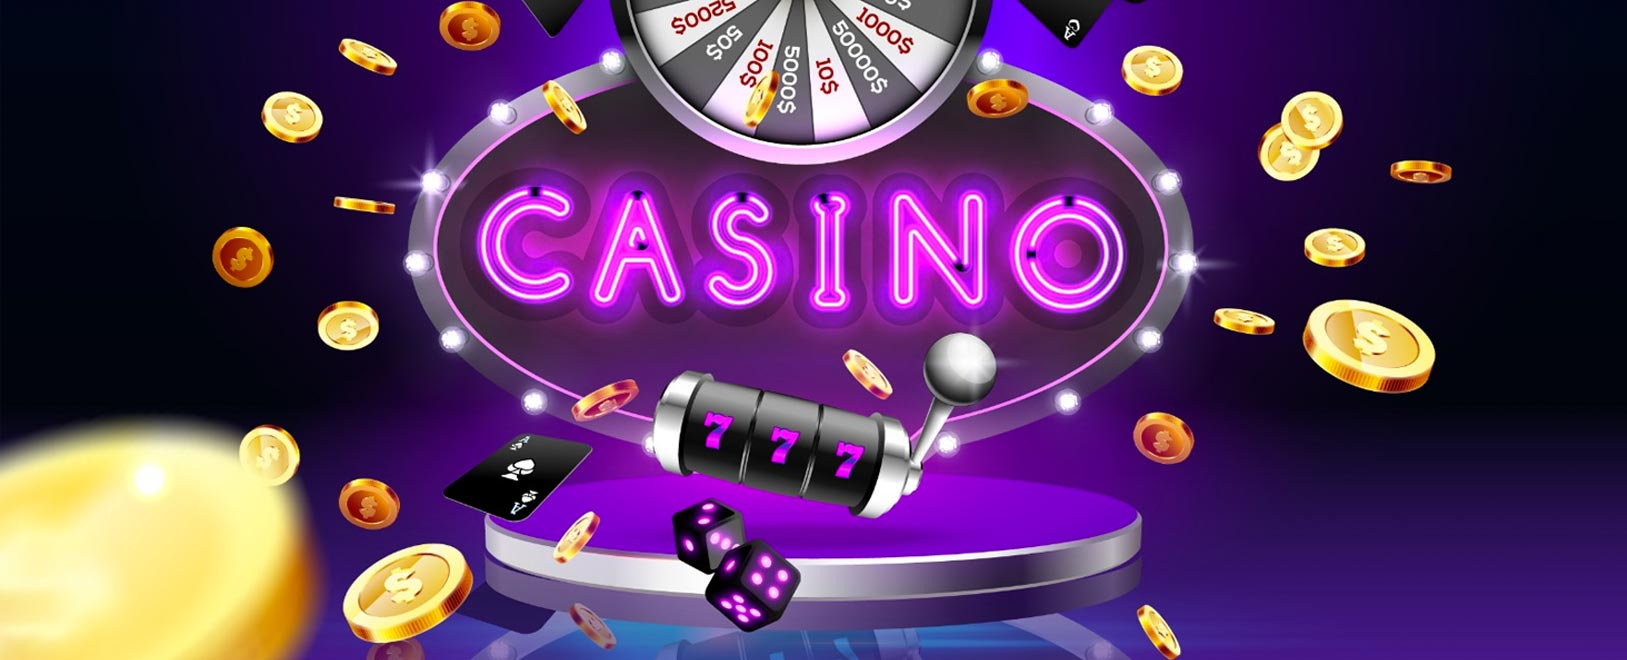 Learn why bitcoin is best for slot games at Slots Casino